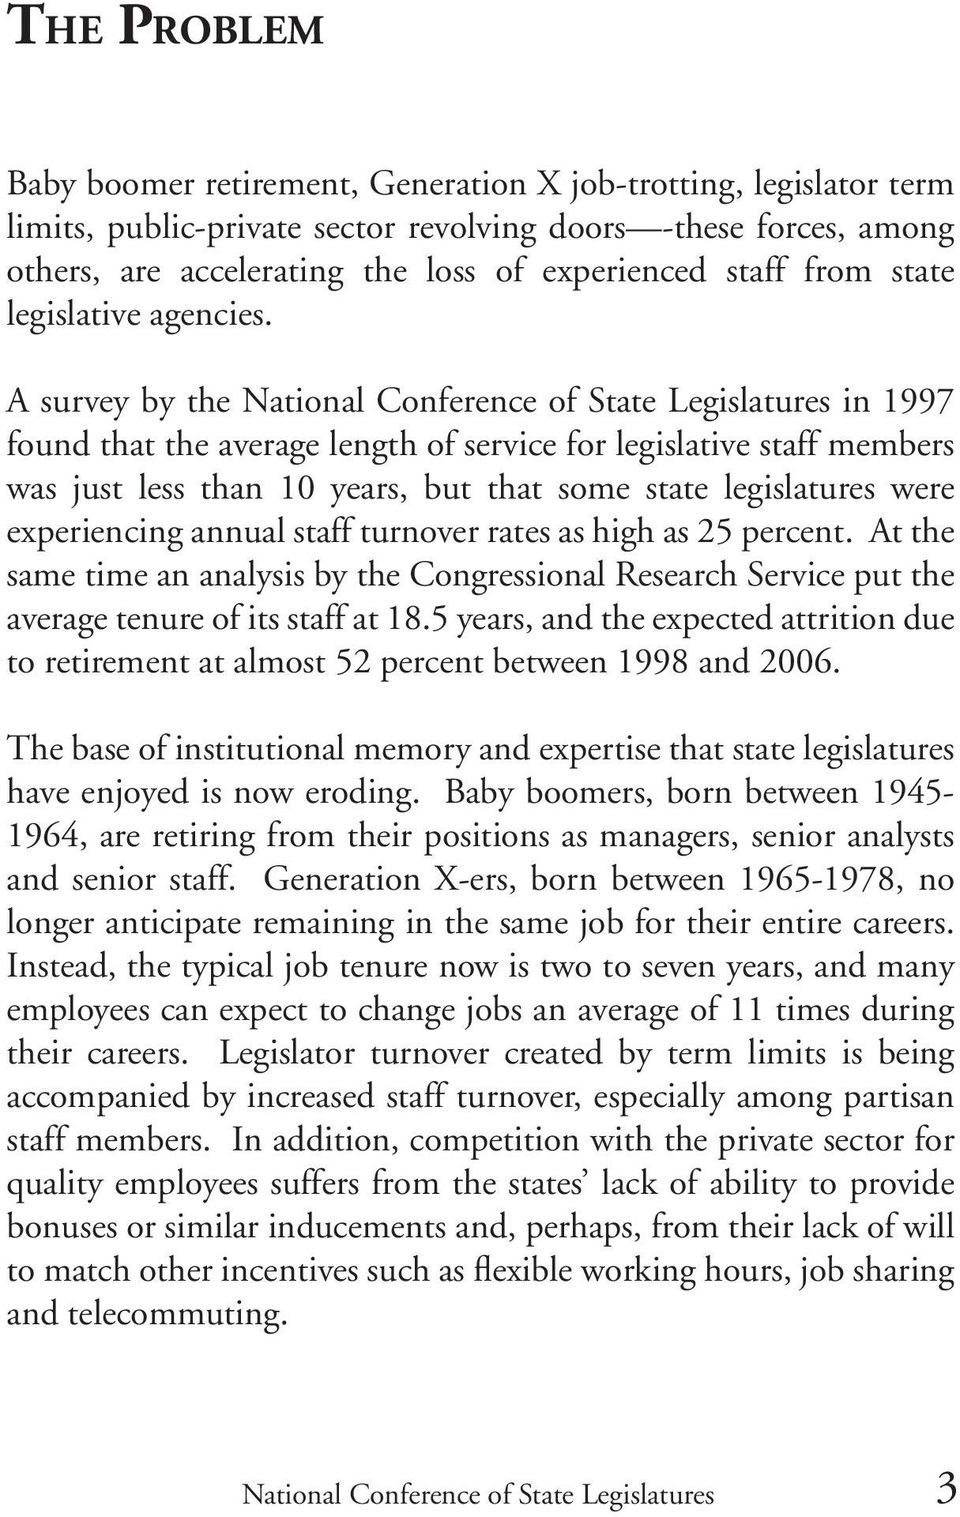 A survey by the in 1997 found that the average length of service for legislative staff members was just less than 10 years, but that some state legislatures were experiencing annual staff turnover